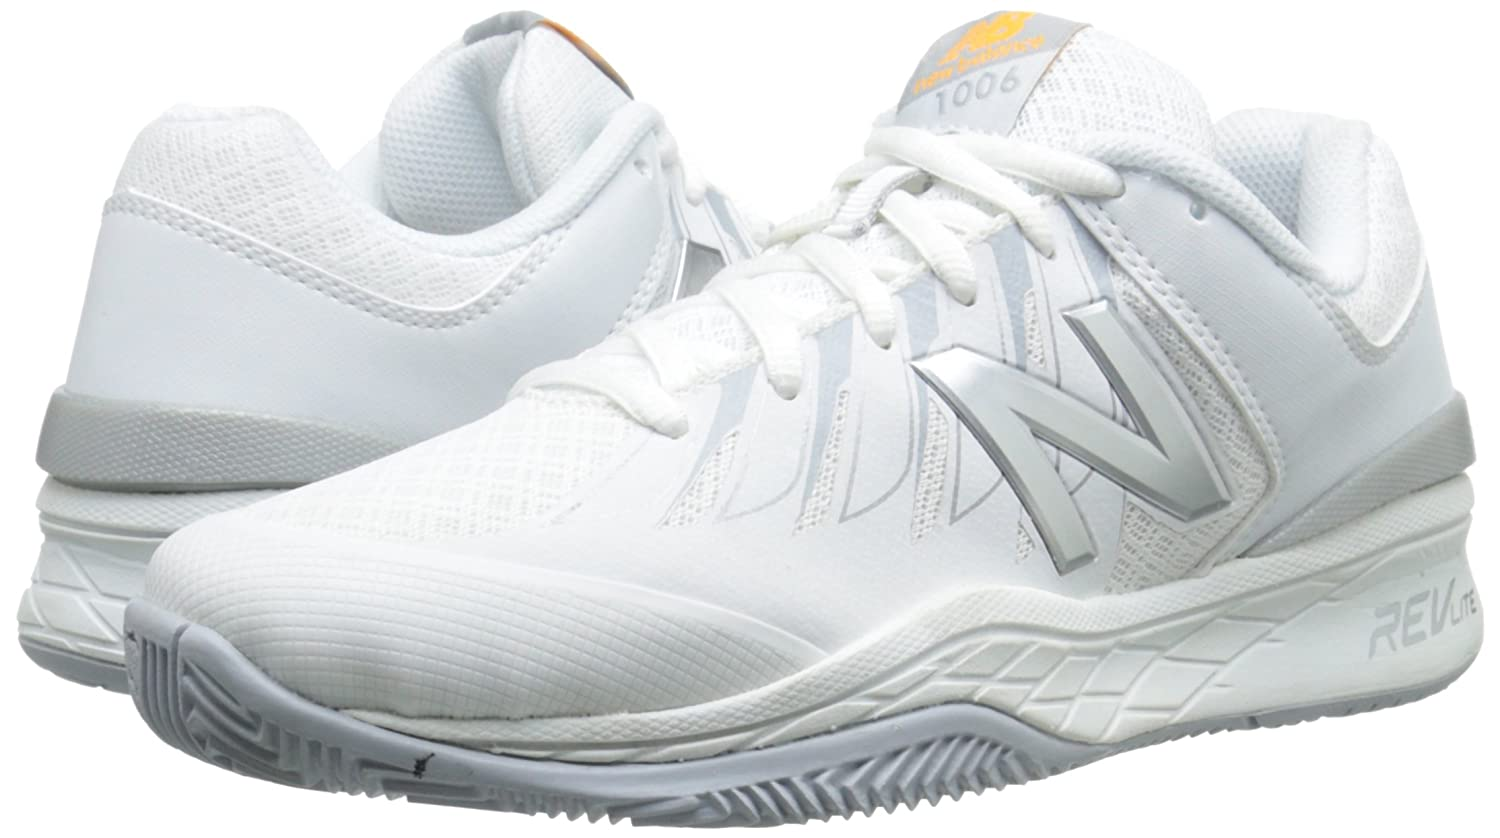 newest 39152 098ec Amazon.com   New Balance Women s WC1006v1 Tennis Shoe   Tennis   Racquet  Sports